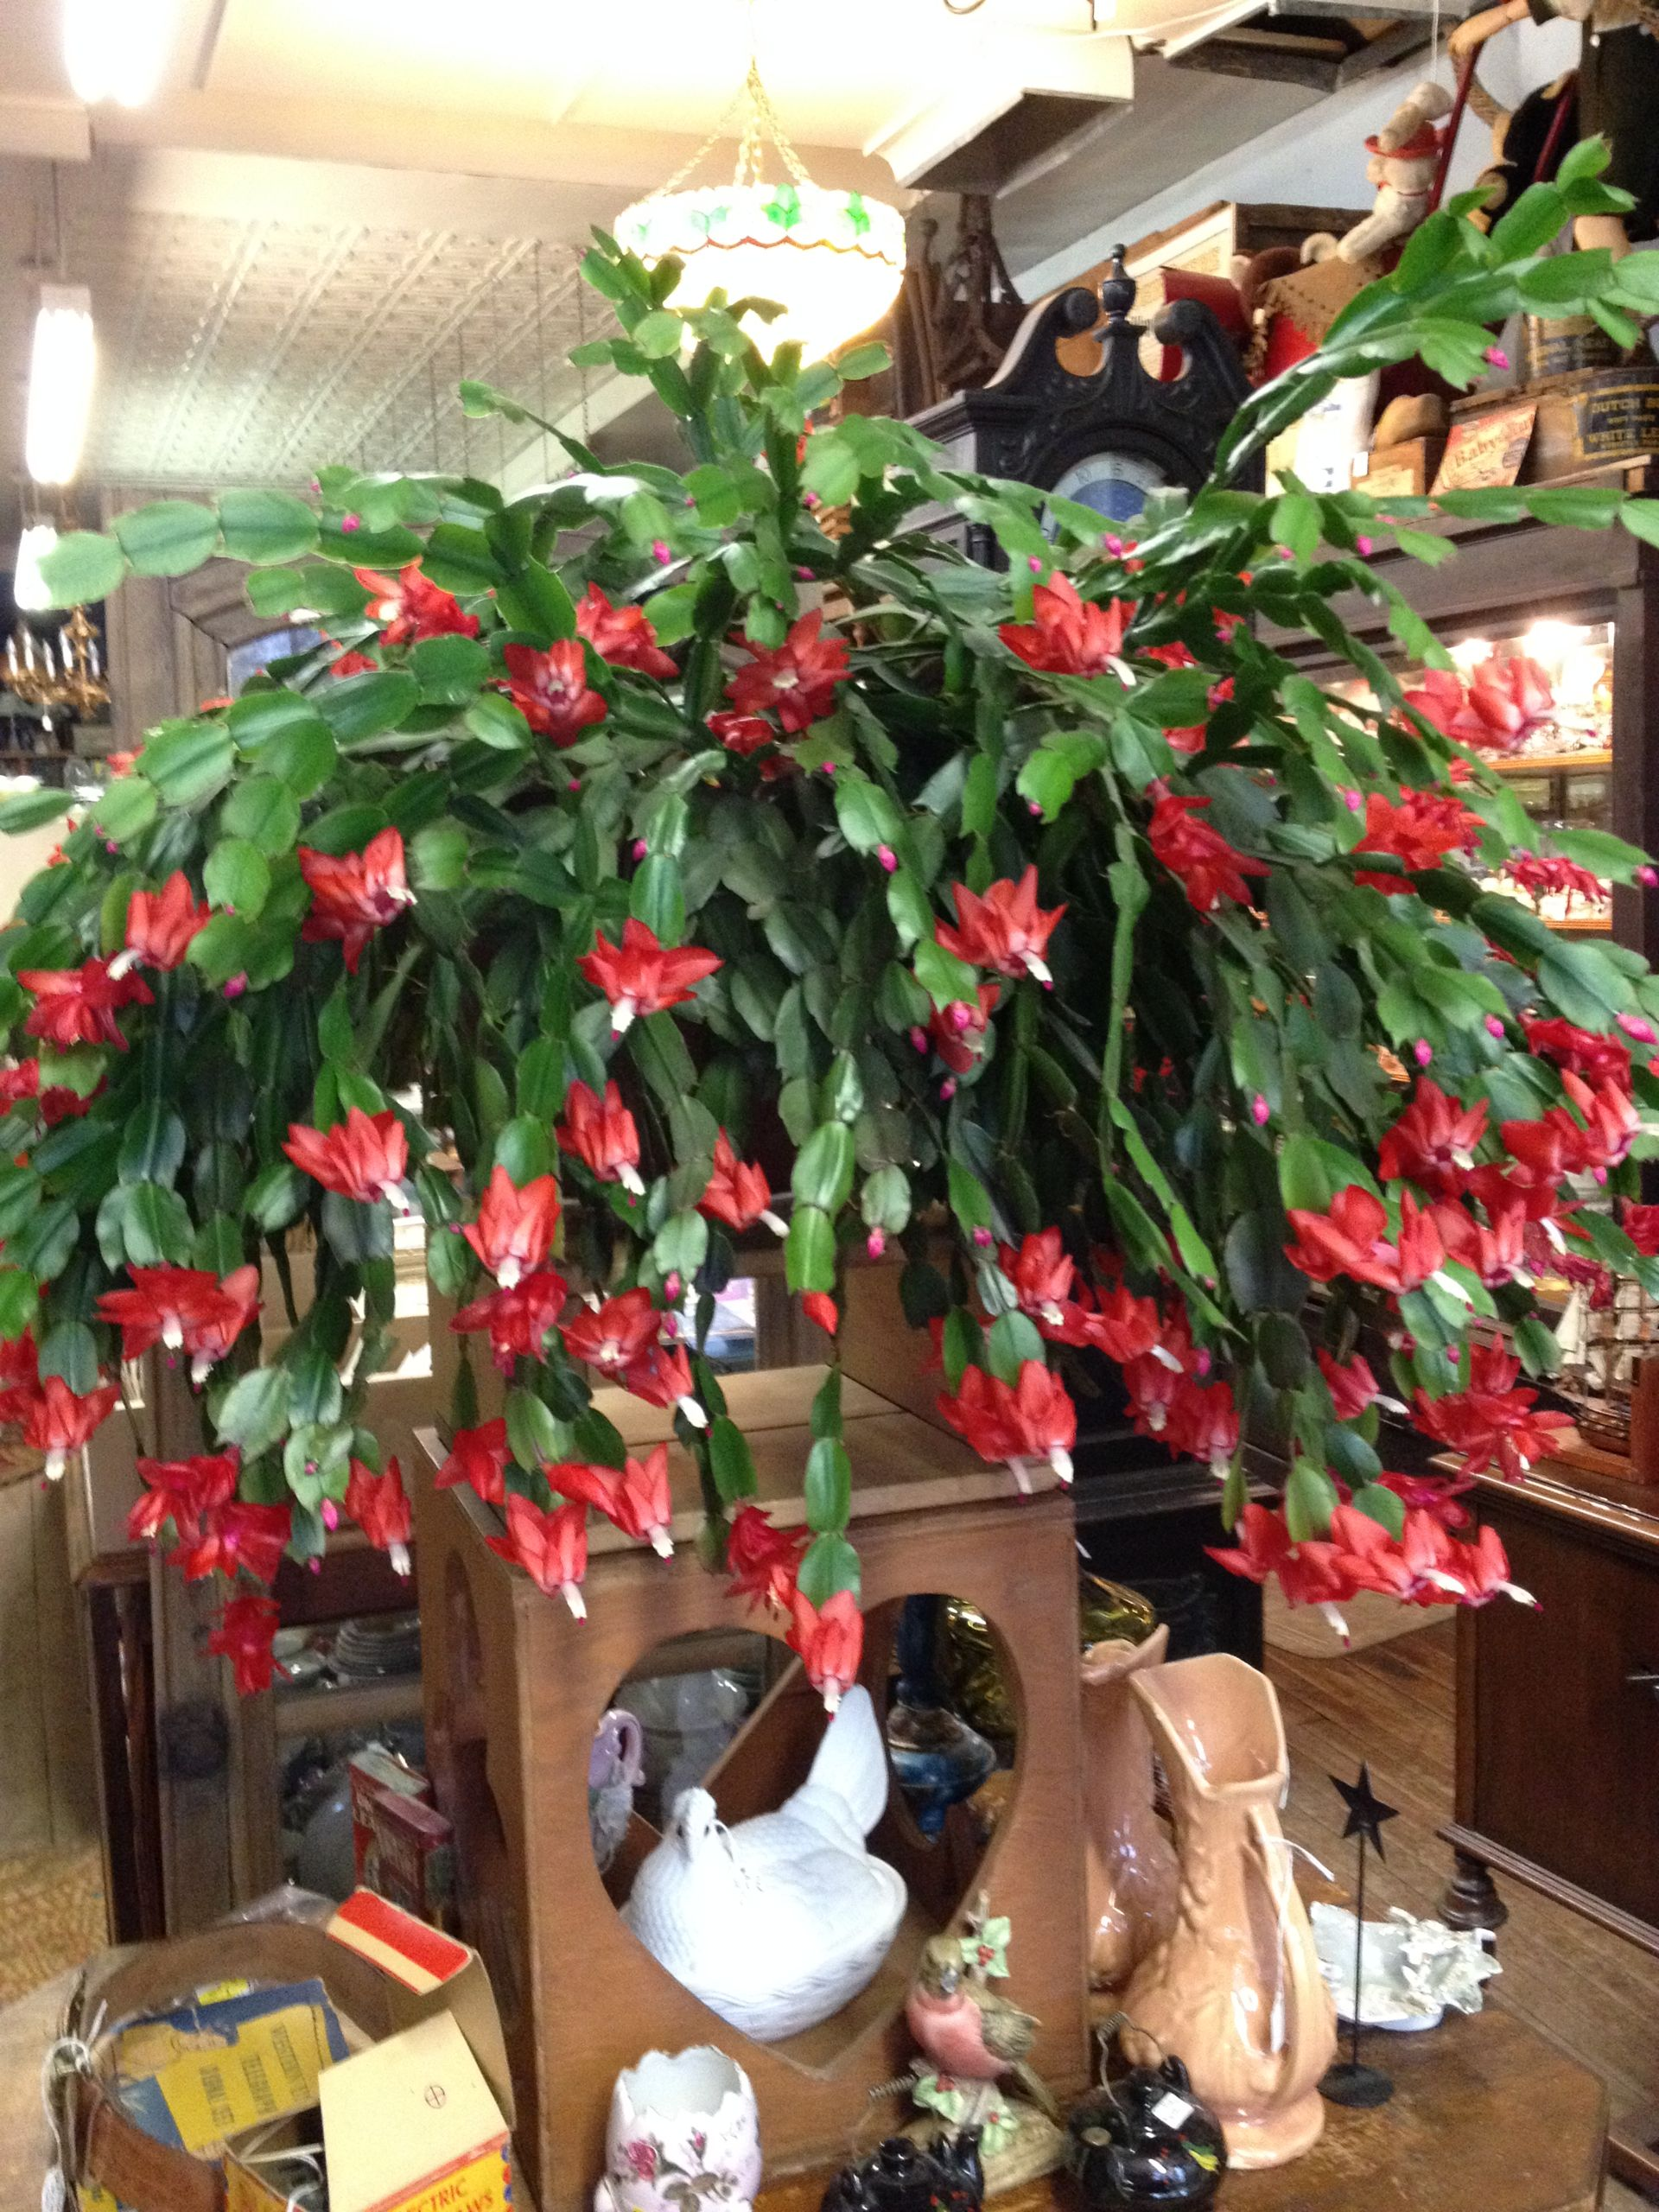 Old Christmas cactus